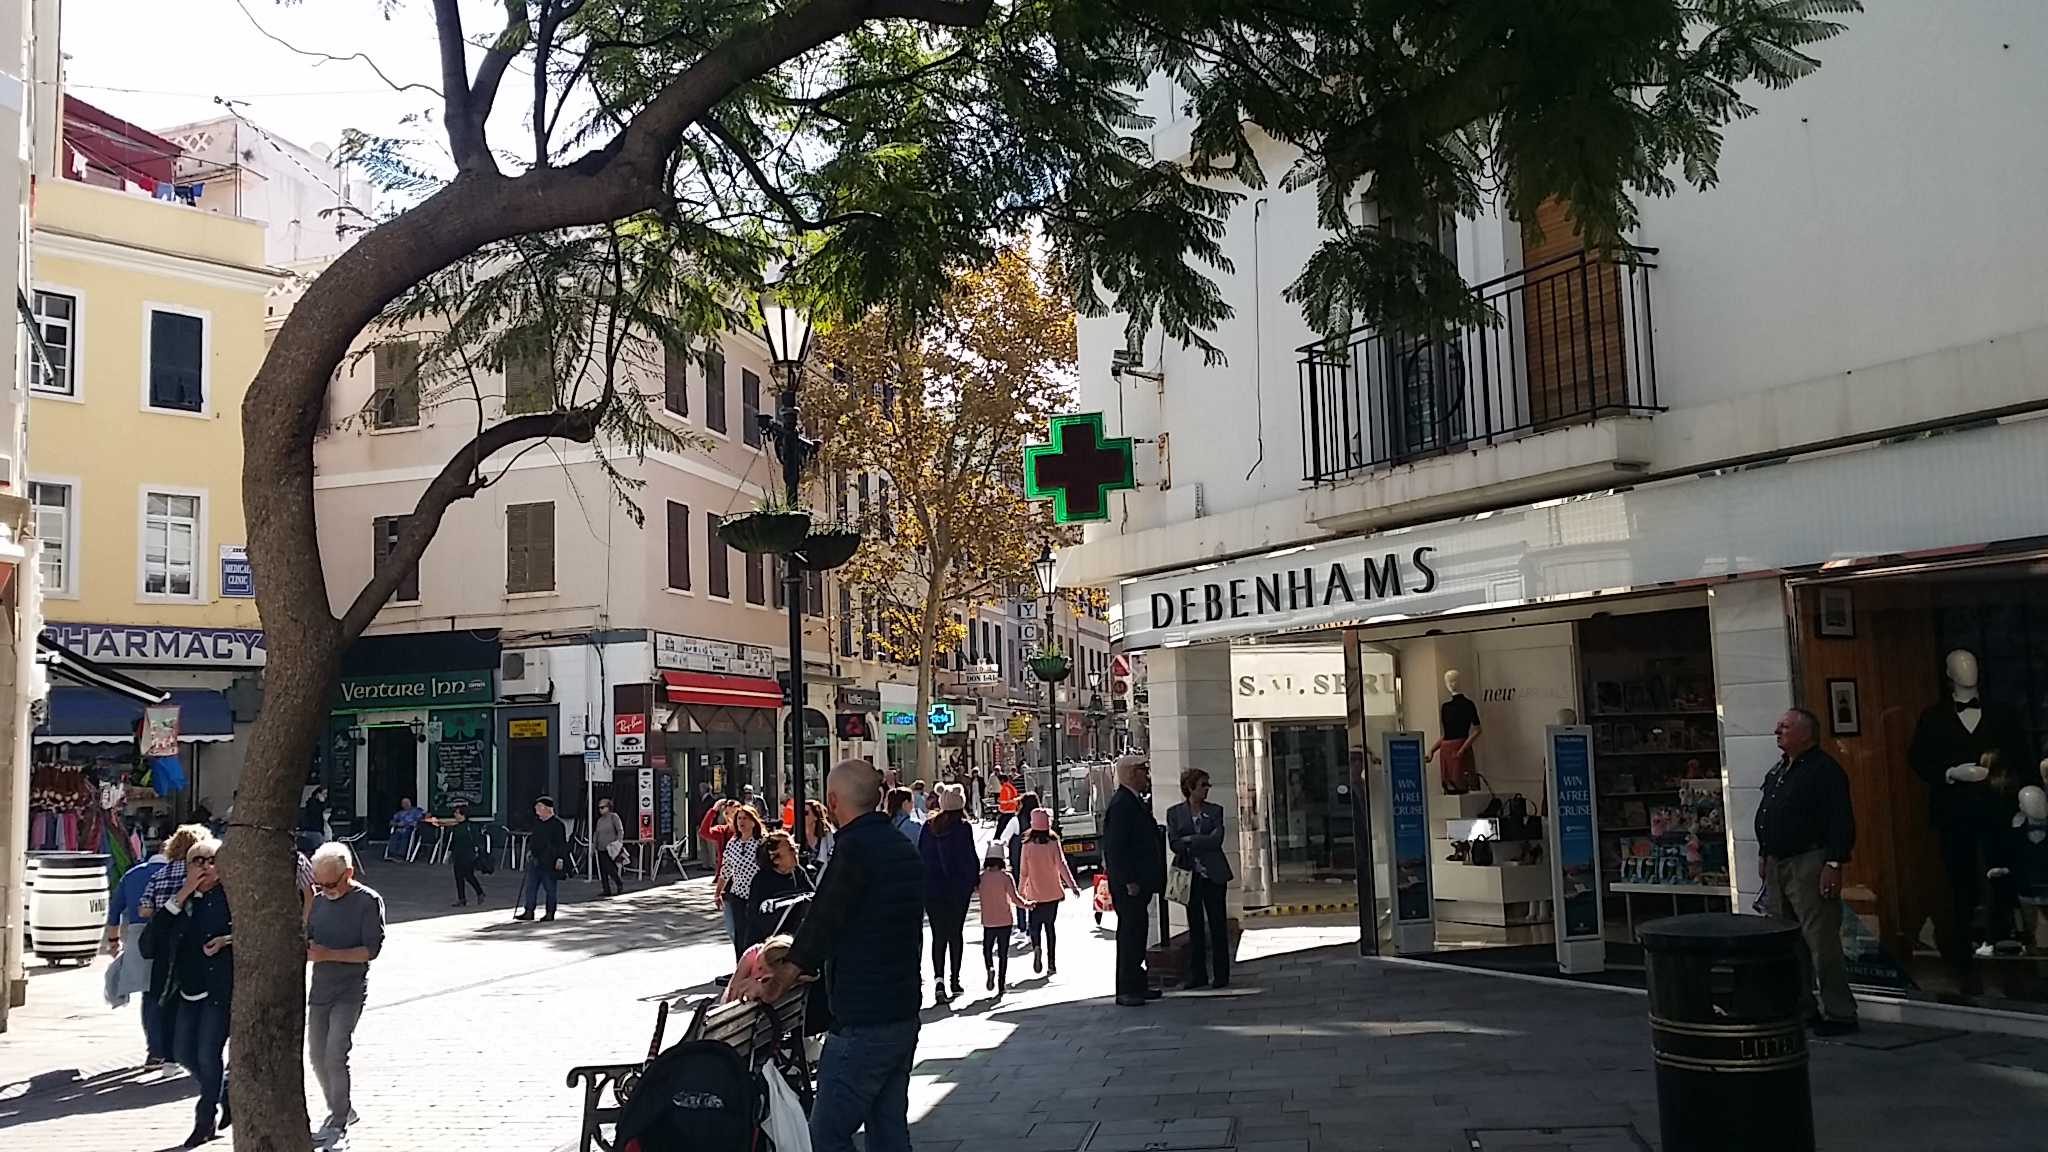 Main Street starts with Debenhams - the ATM is just over the road